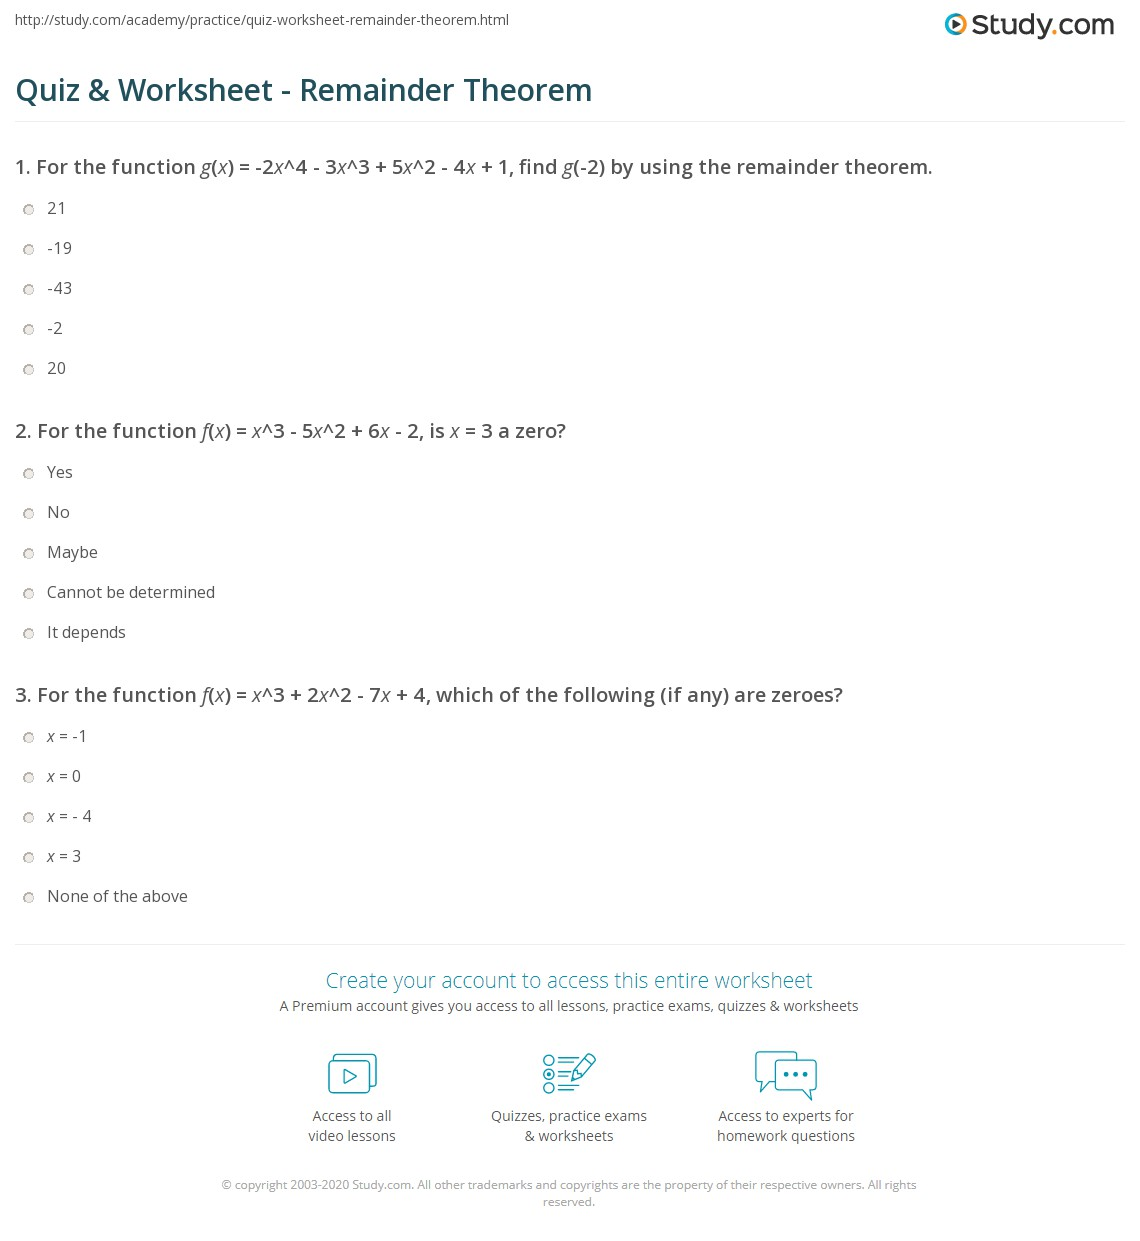 Remainder Theorem: Definition & Examples